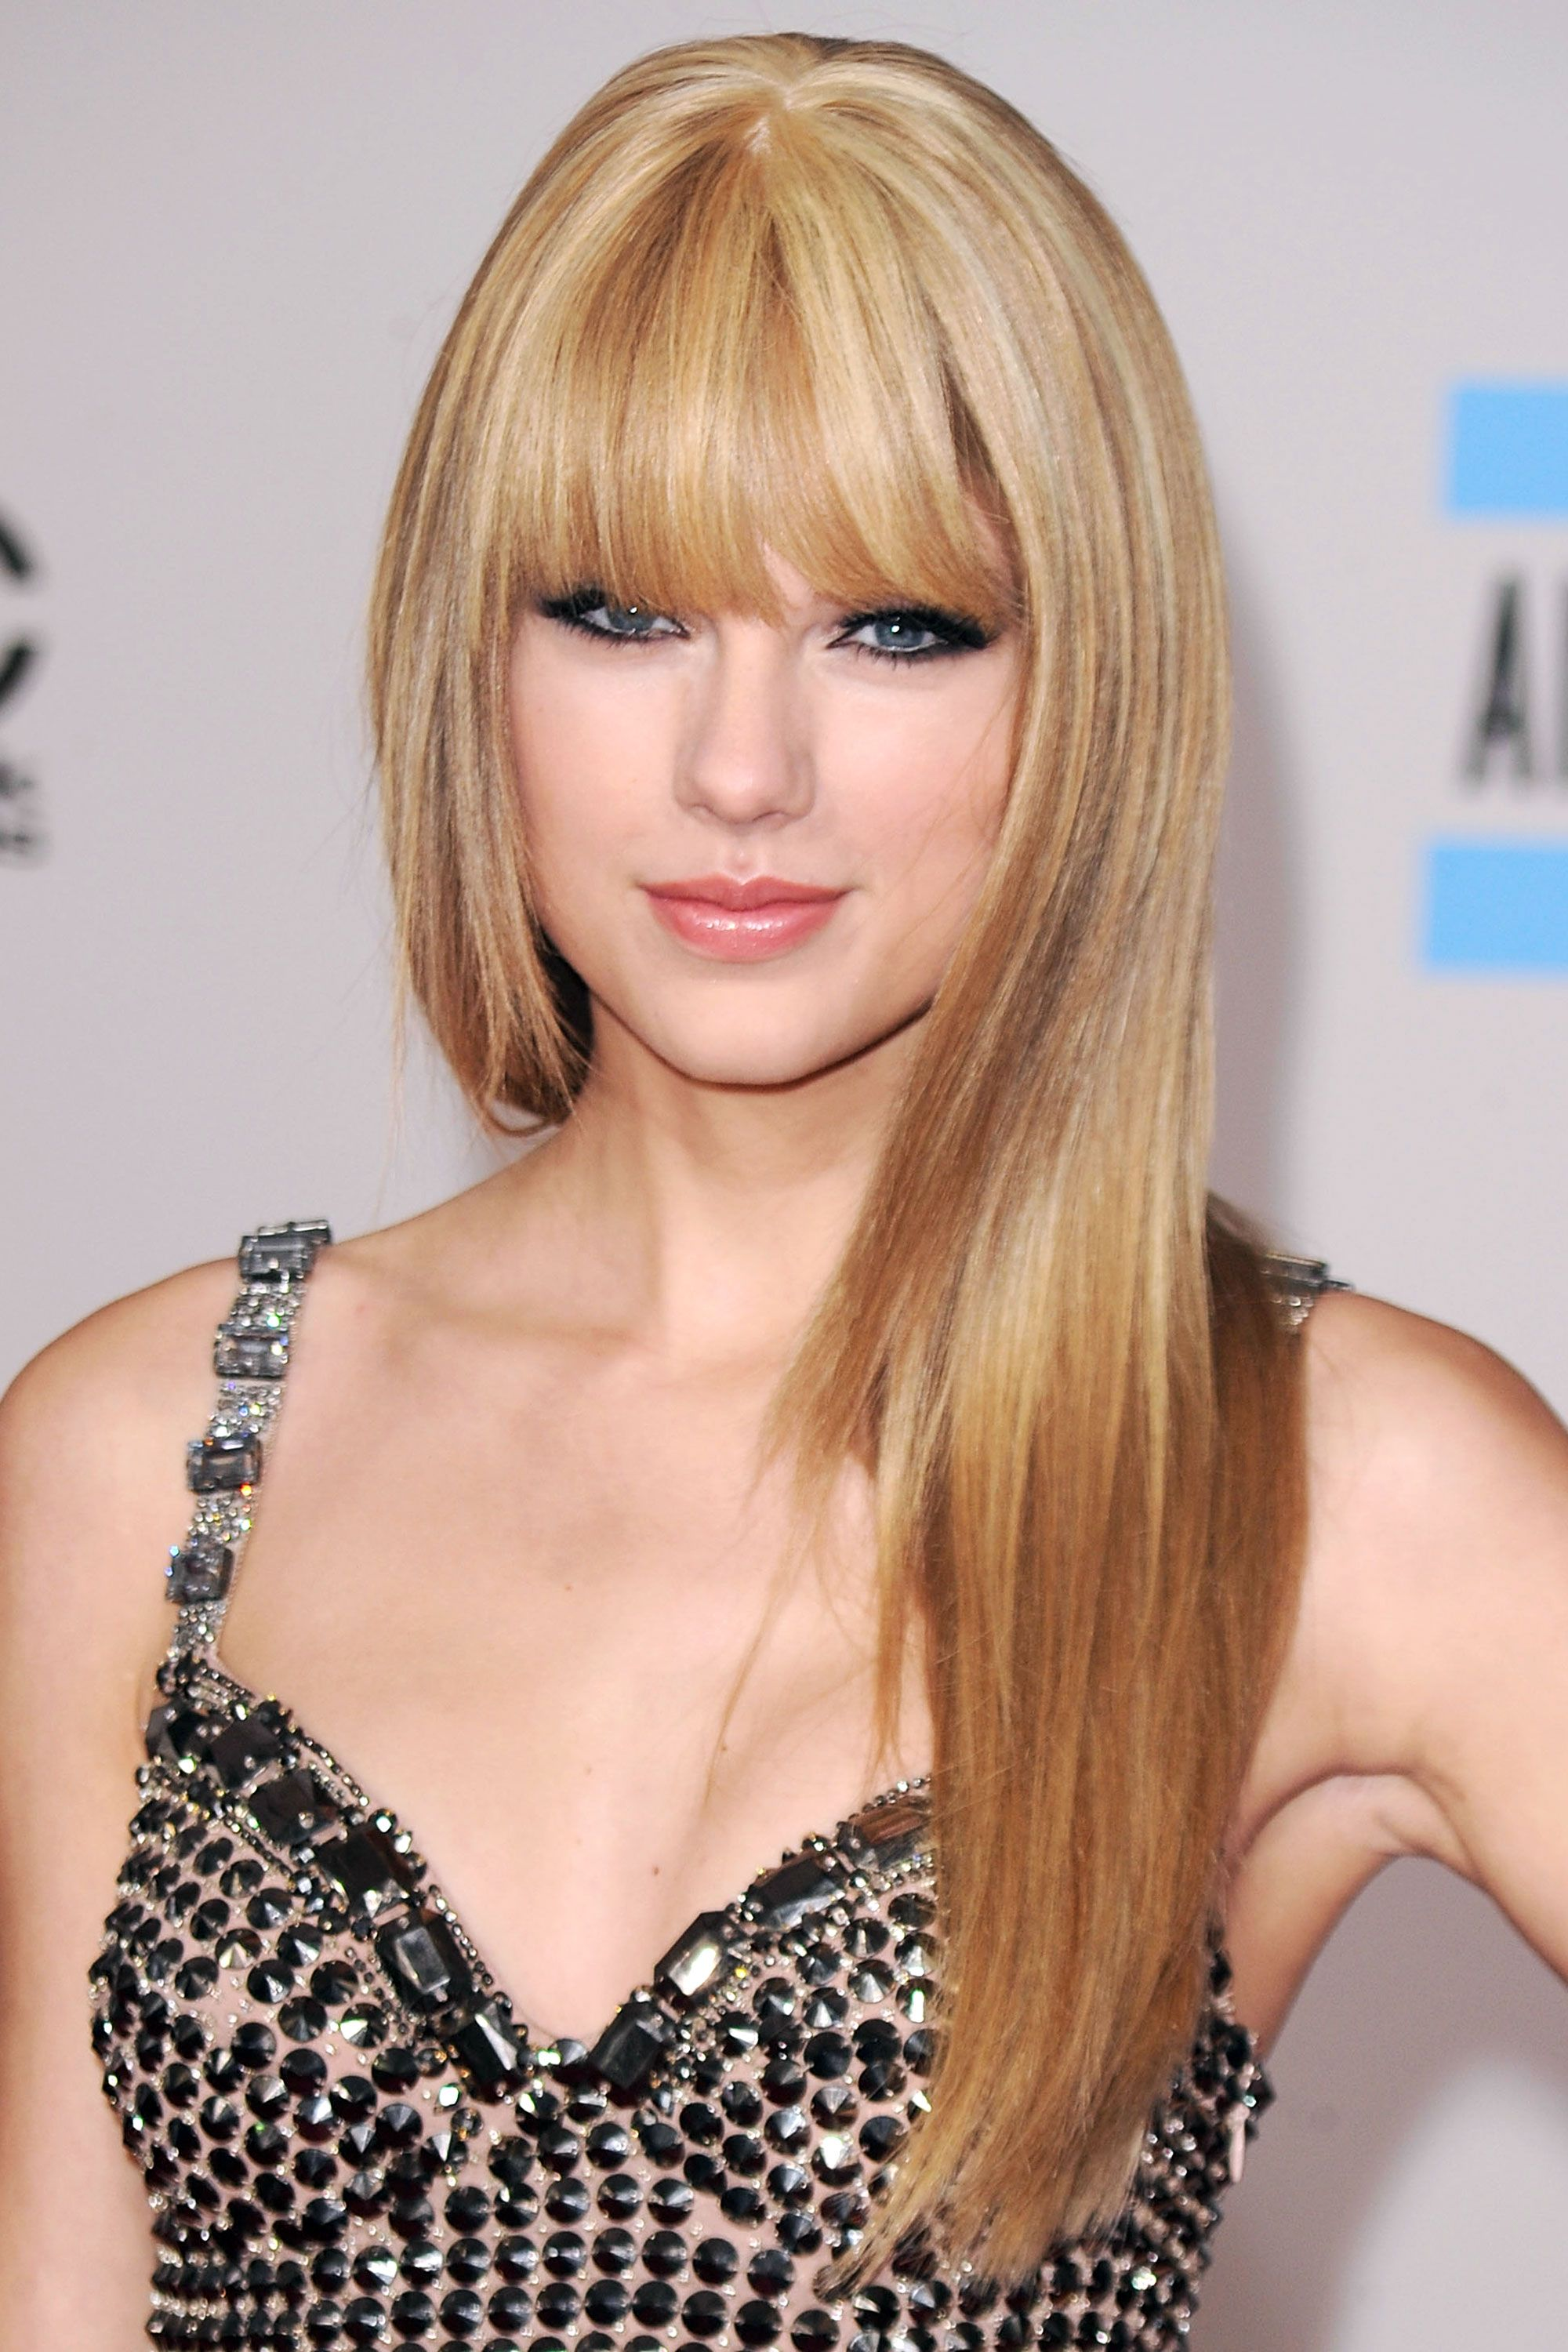 Taylor Swift S Amazing Beauty Transformation Through The Years Taylor Swift Bangs Taylor Swift Hair Straight Hairstyles